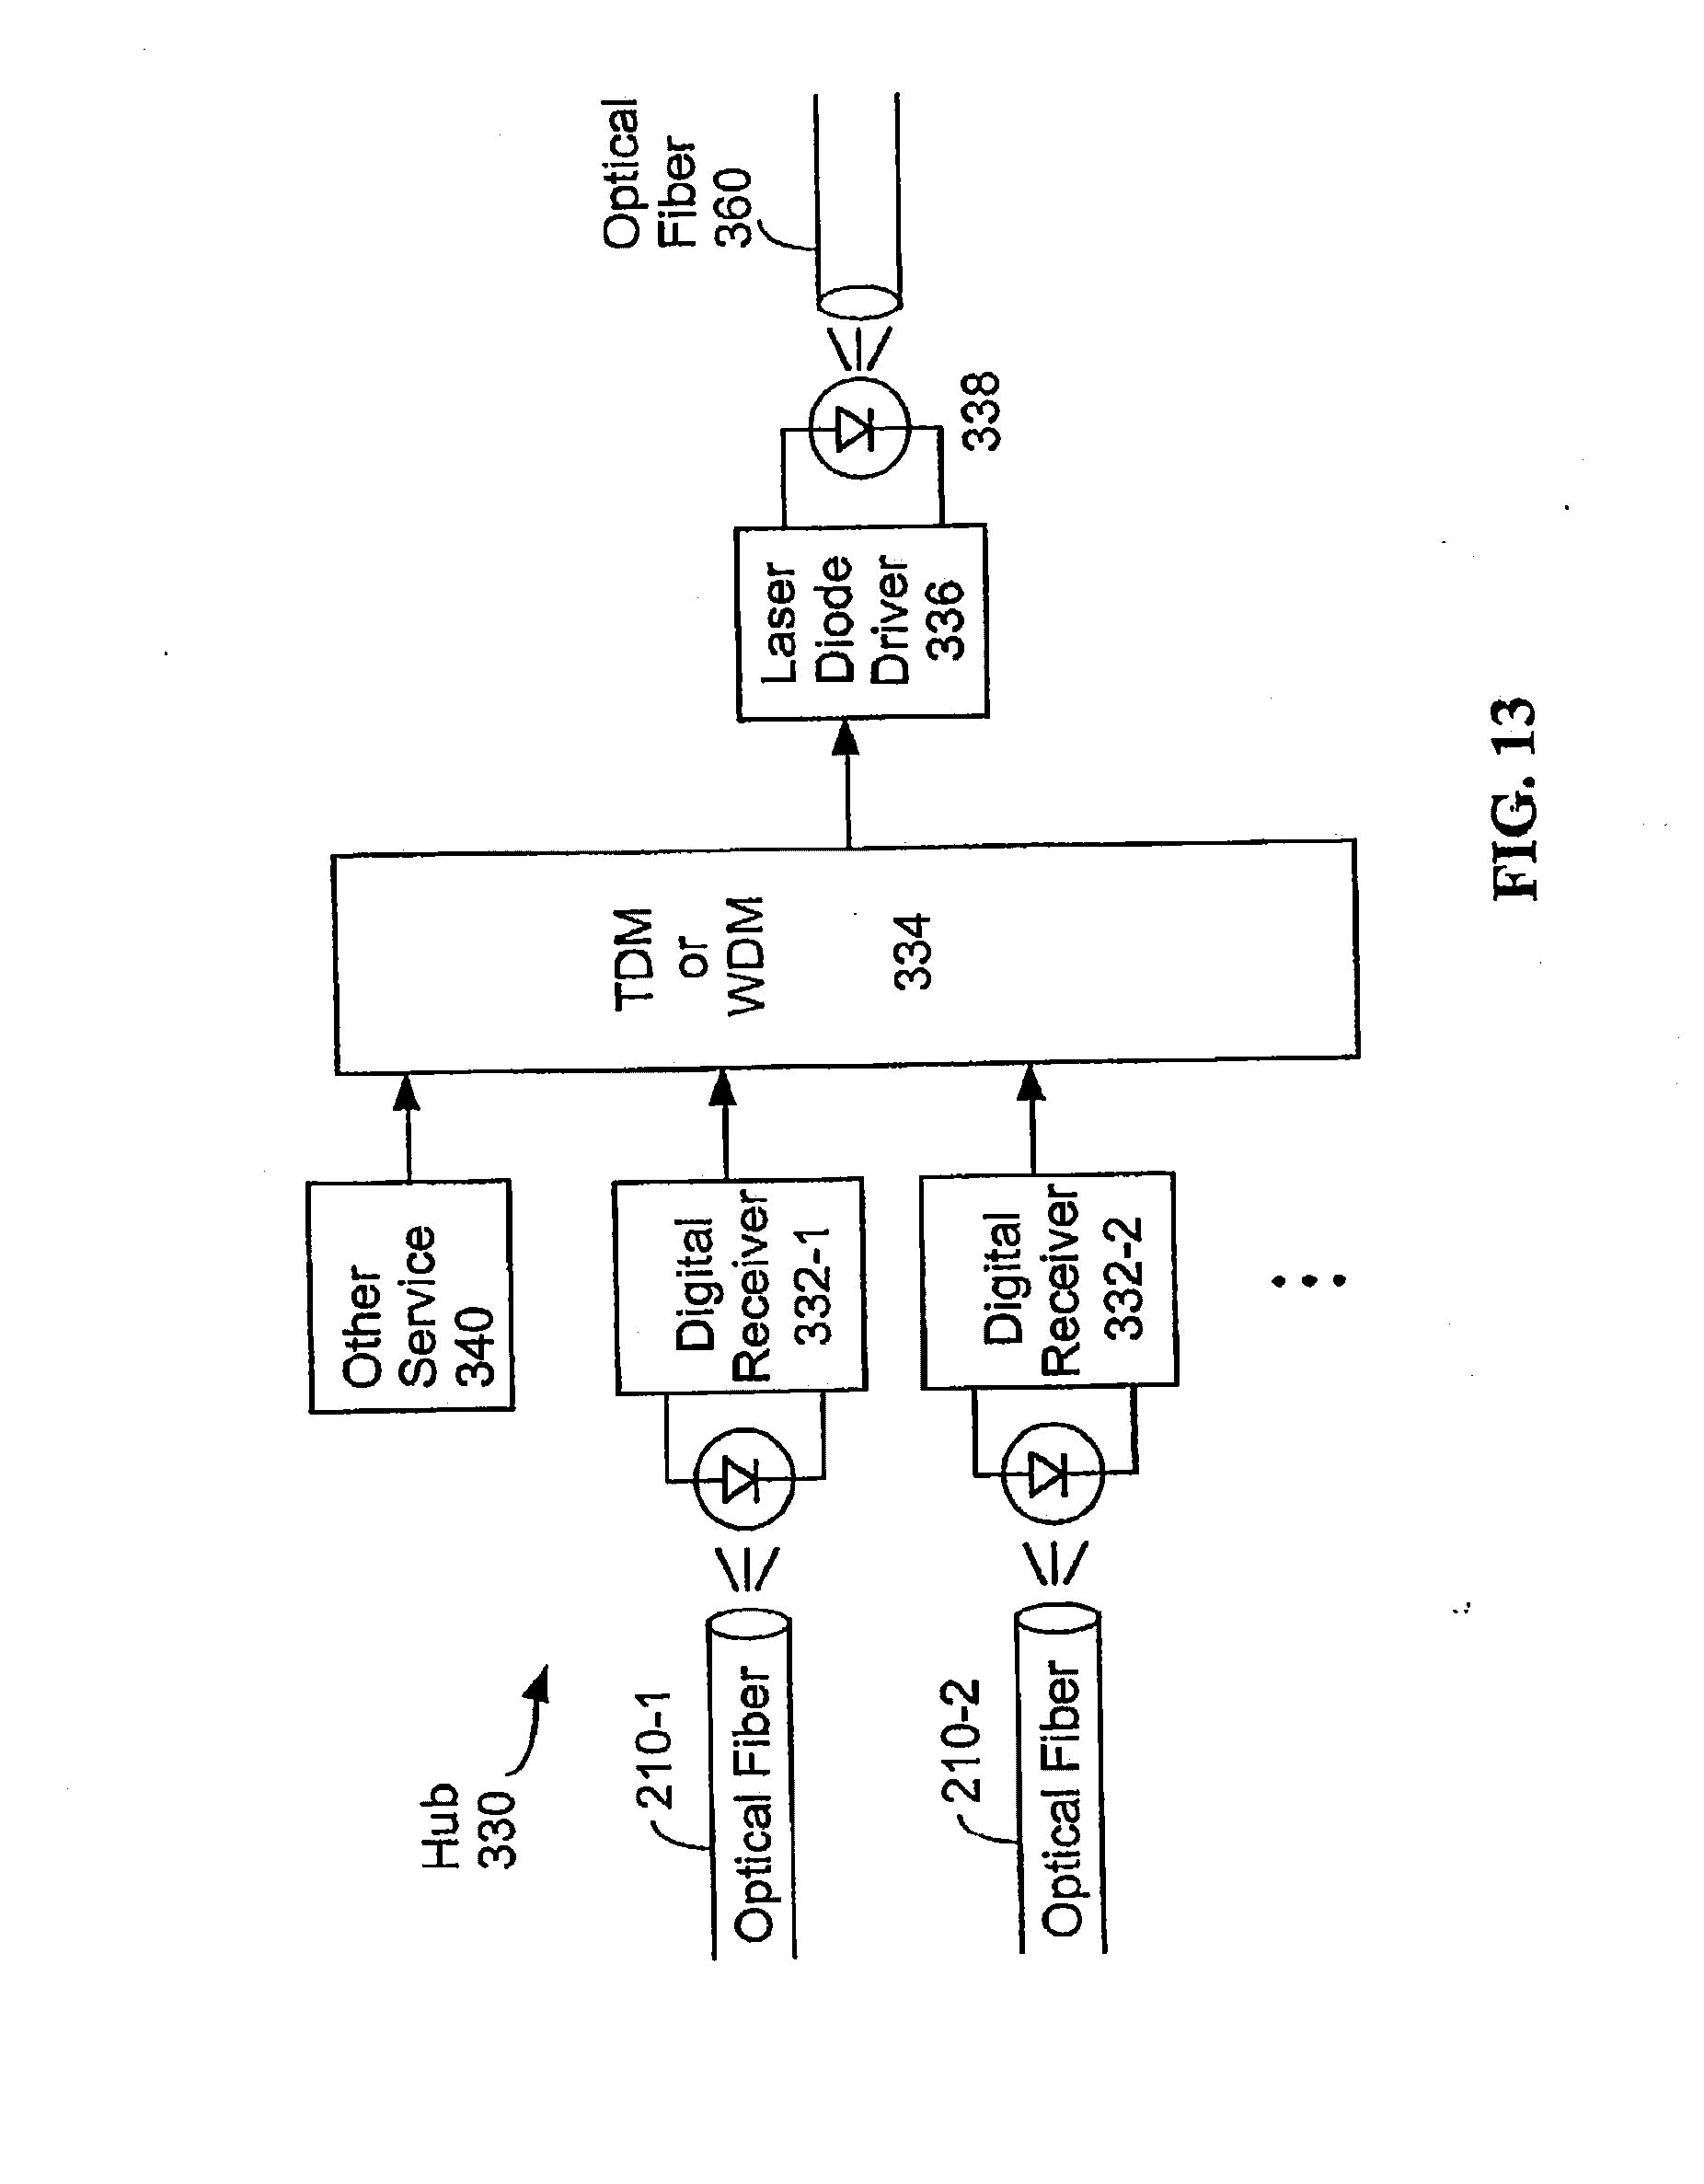 Patent Us20080019706 System And Method For Transmitting Data On Laser Diode Driver Circuit Diagram Drawing